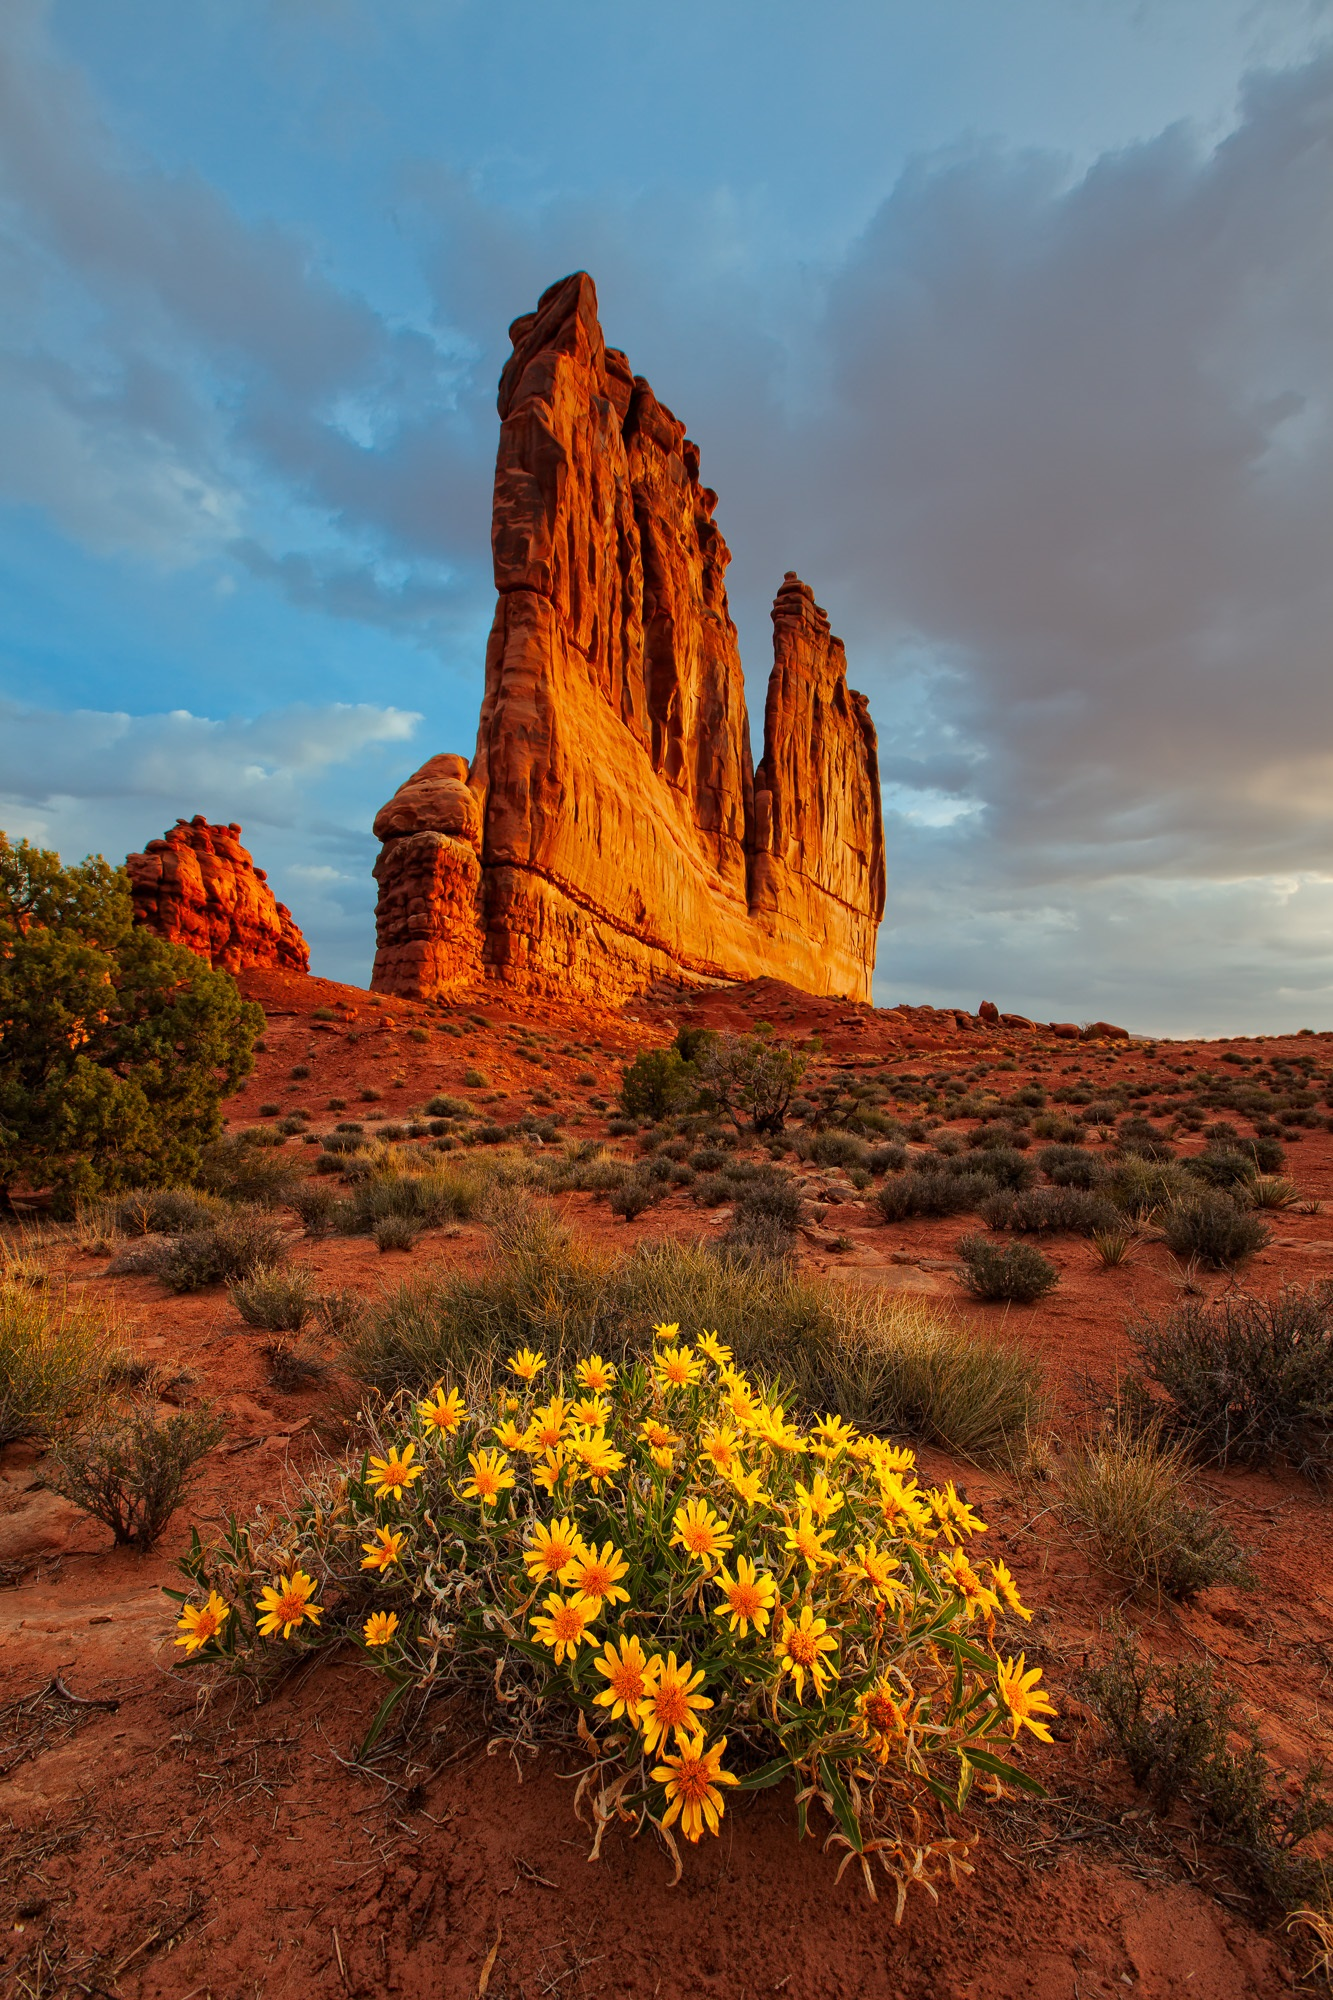 Mules Ear Wildflowers Blooming Below The Organ, Arches National Park, Utah